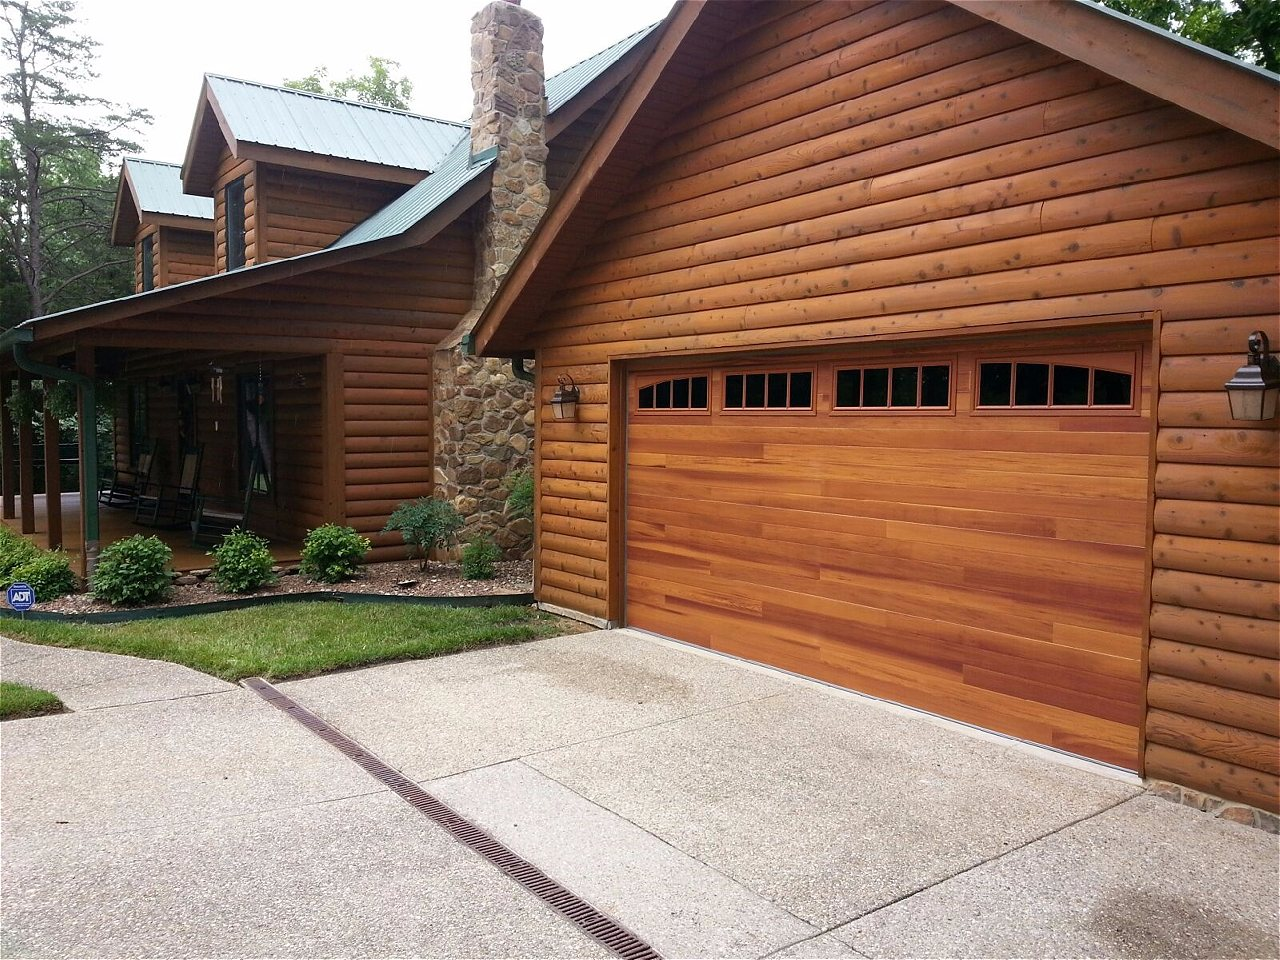 Transform Your Home With The Warmth And Appeal Of A CHI Accents Planks U0026  Woodtones Garage Door. Choose From Four Rich And Exquisite Hues That Fit  Flawlessly ...